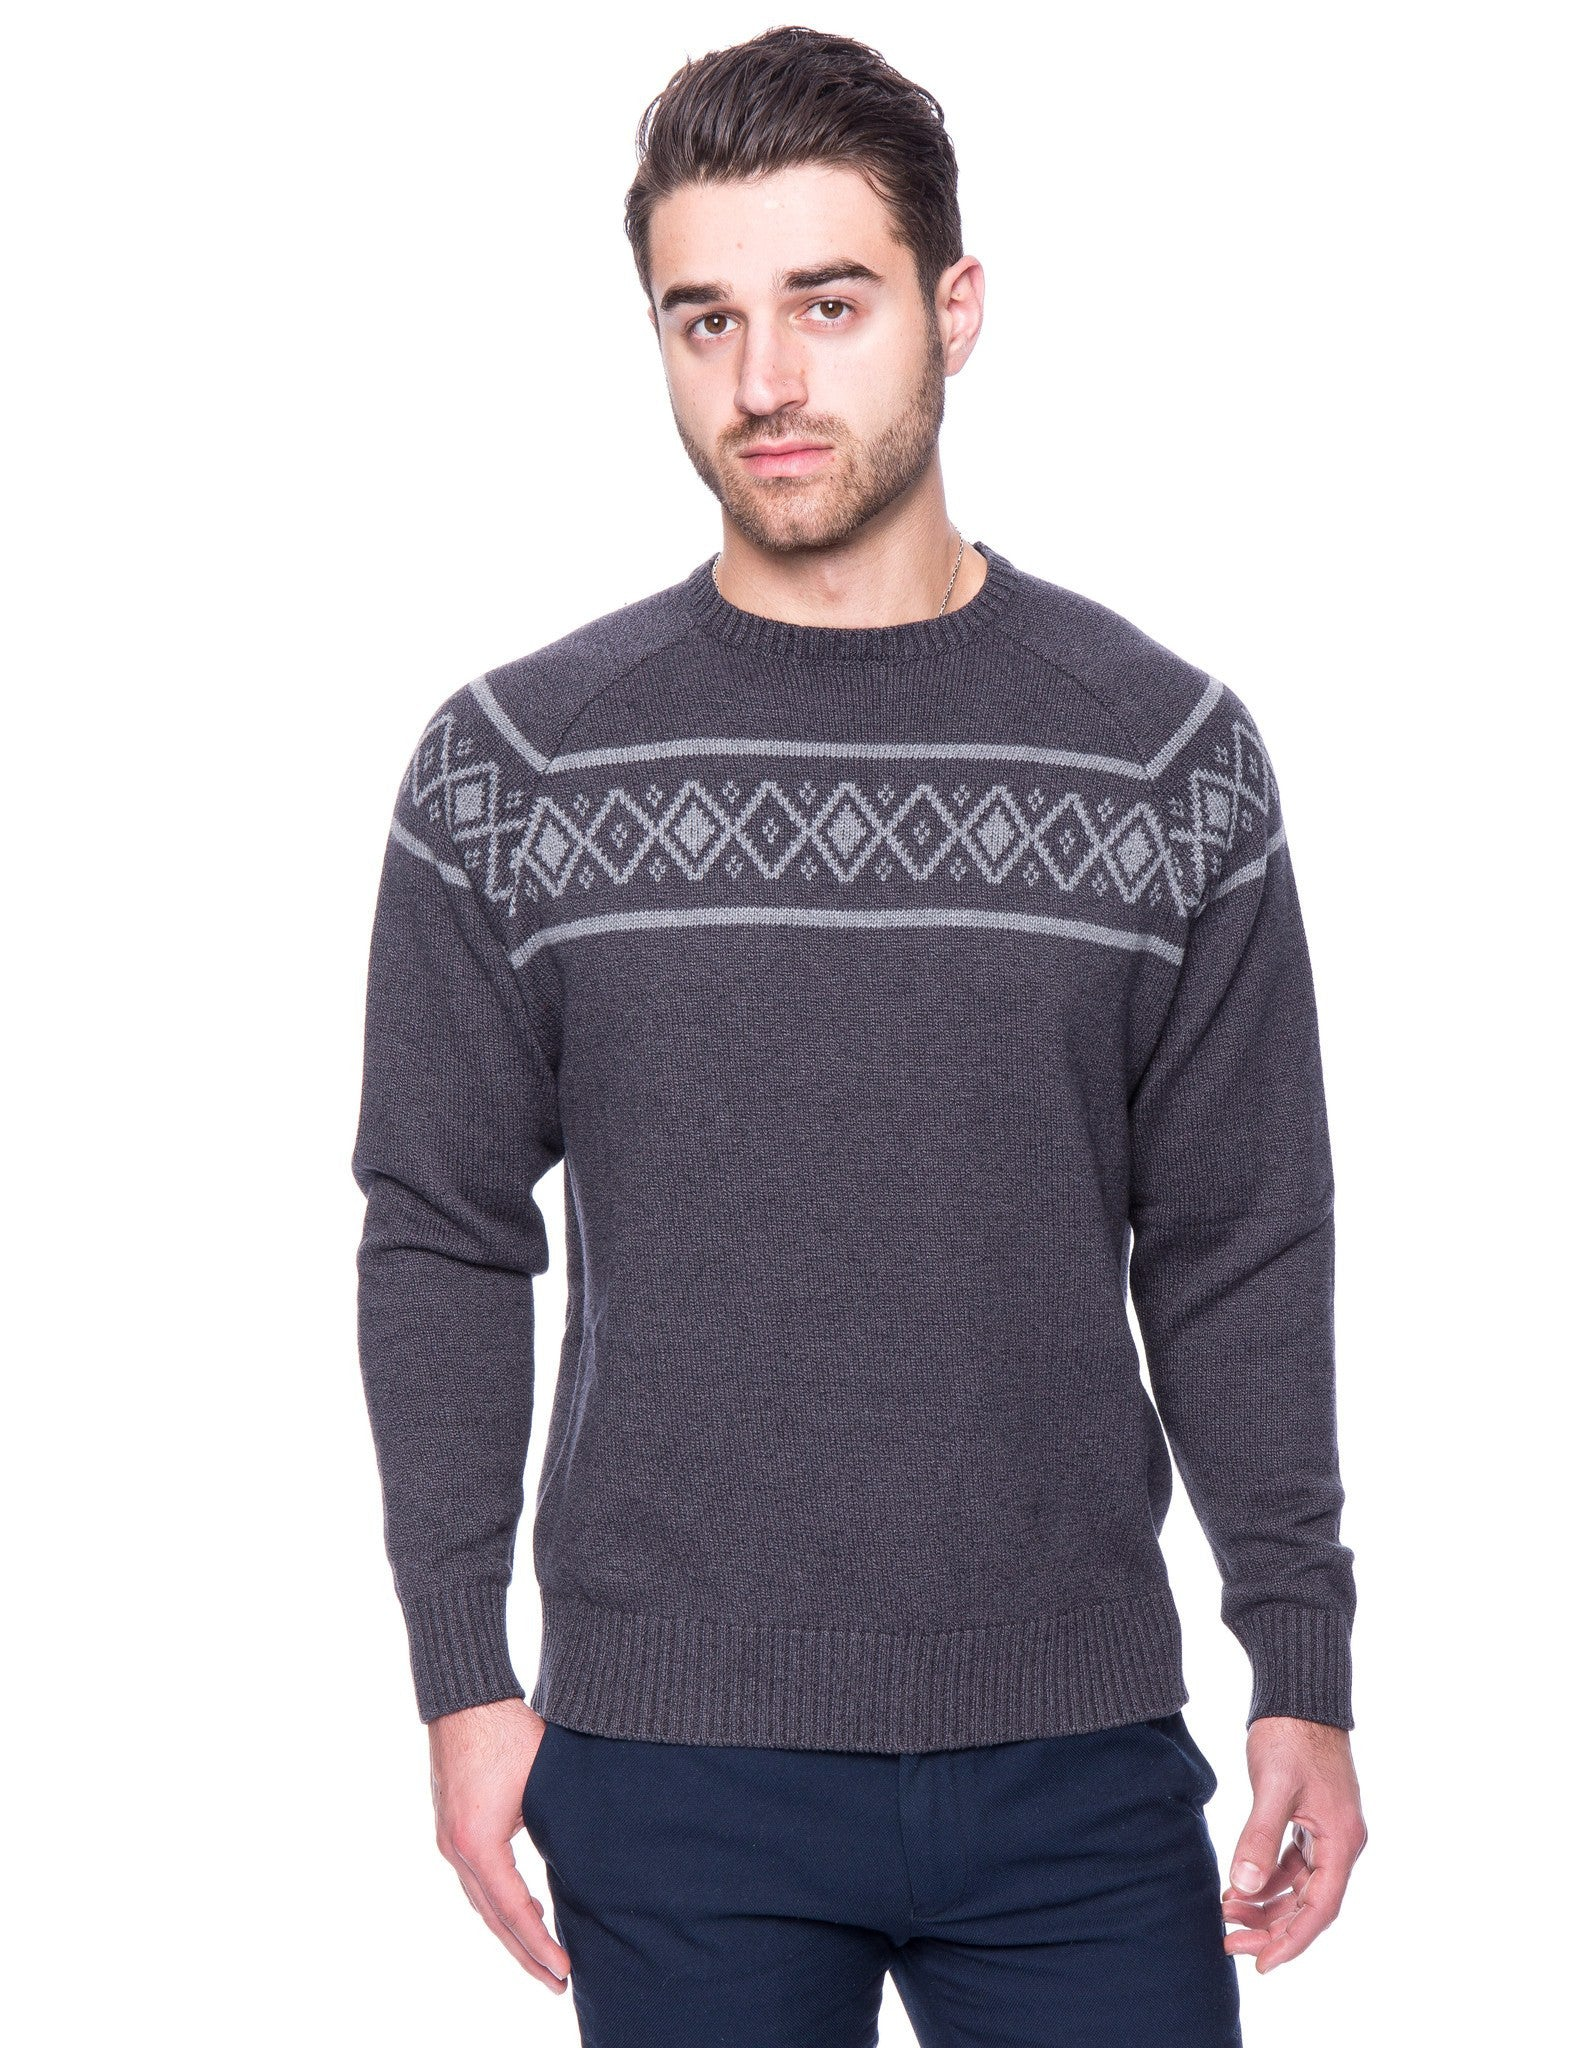 Box-Packaged Tocco Reale Men's 100% Cotton Crew Neck Sweater with Fair Isle Stripe